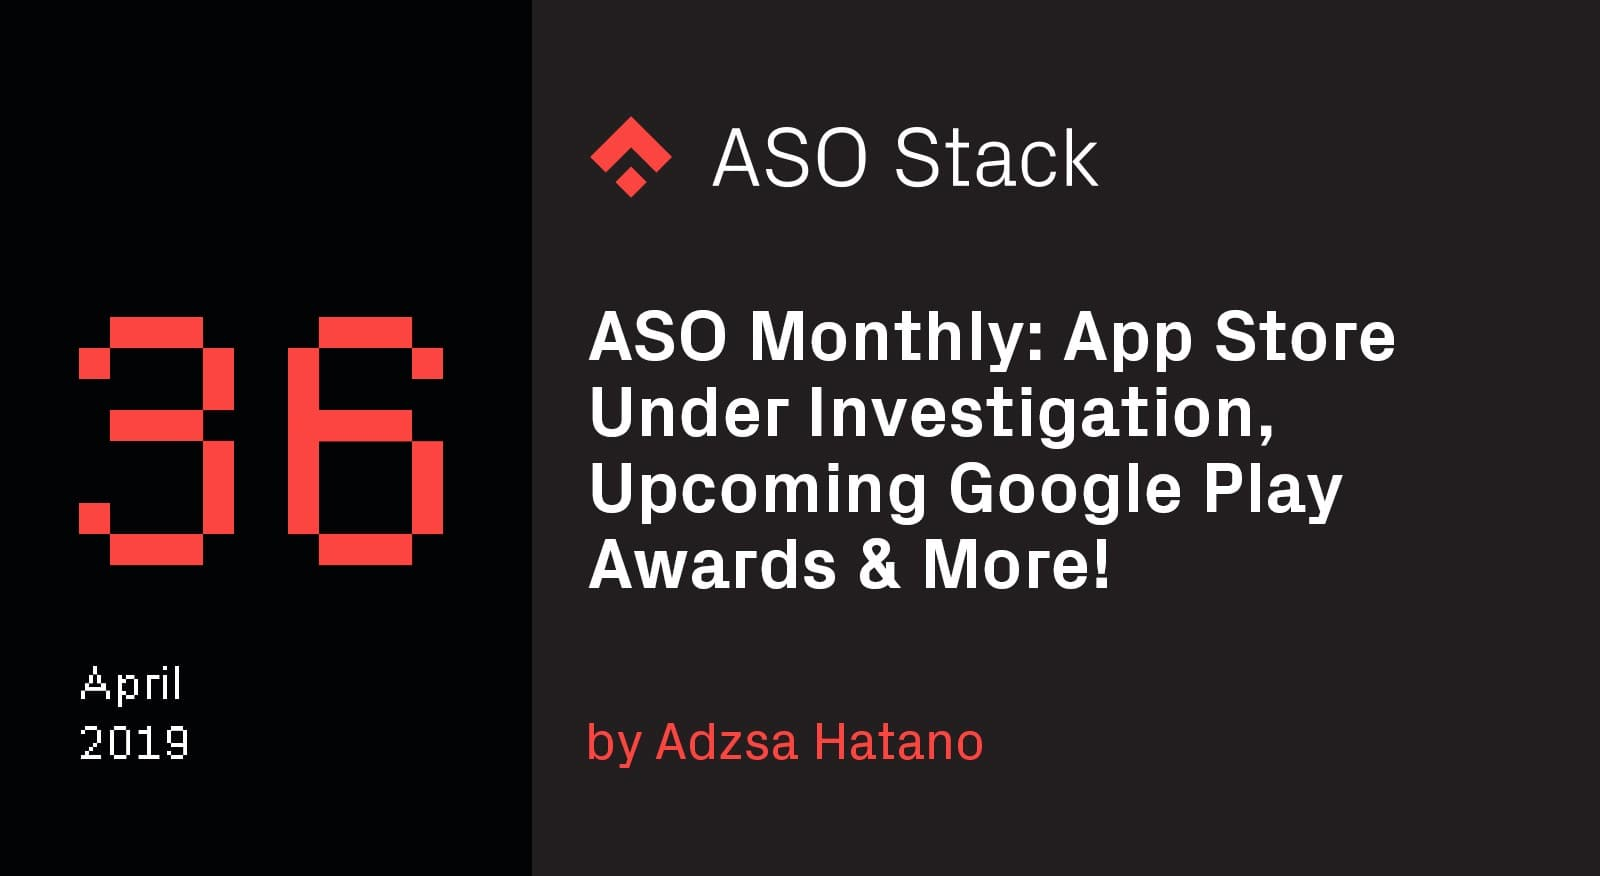 ASO Monthly #36 April 2019- App Store Under Investigation, Upcoming Google Play Awards & More!